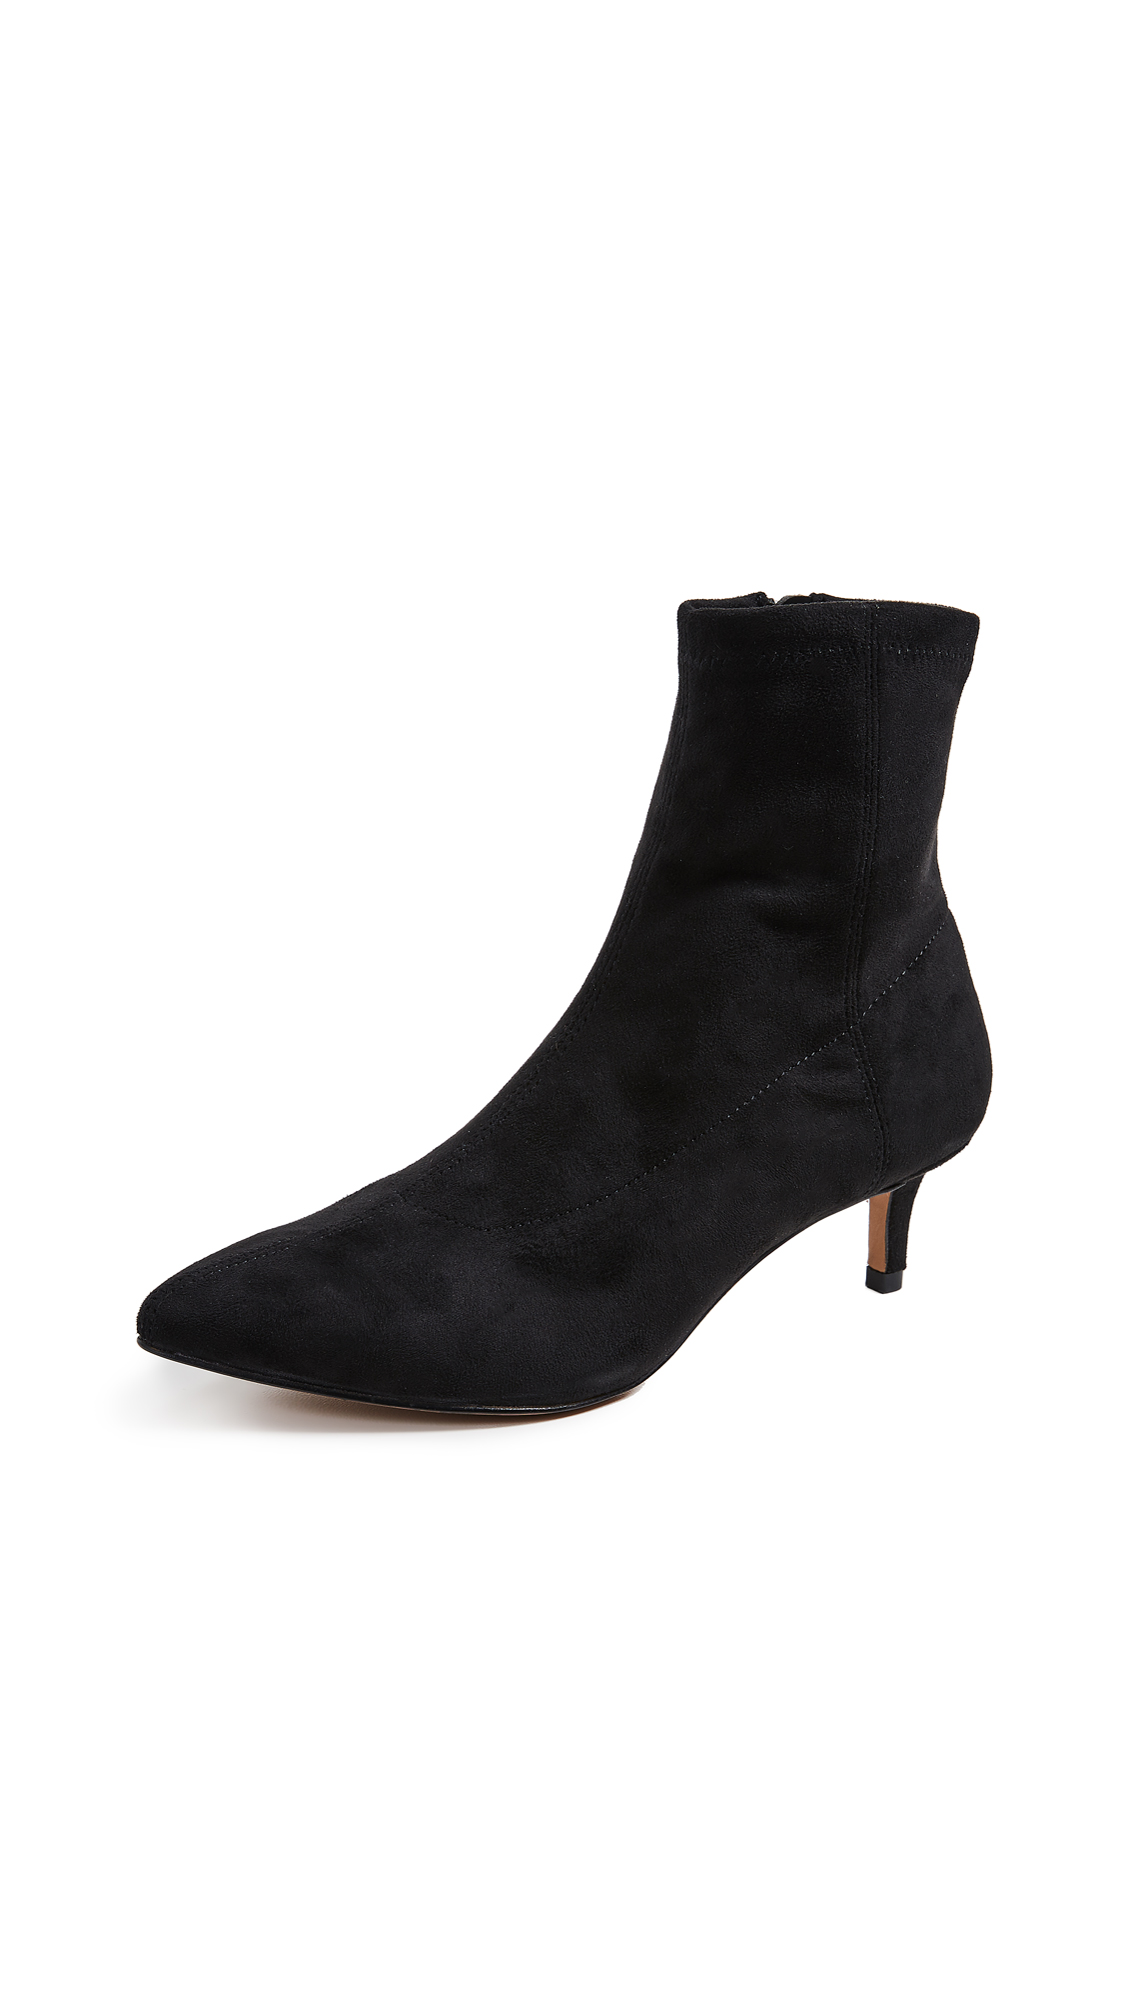 Rebecca Minkoff Sayres Kitten Heel Booties - Black